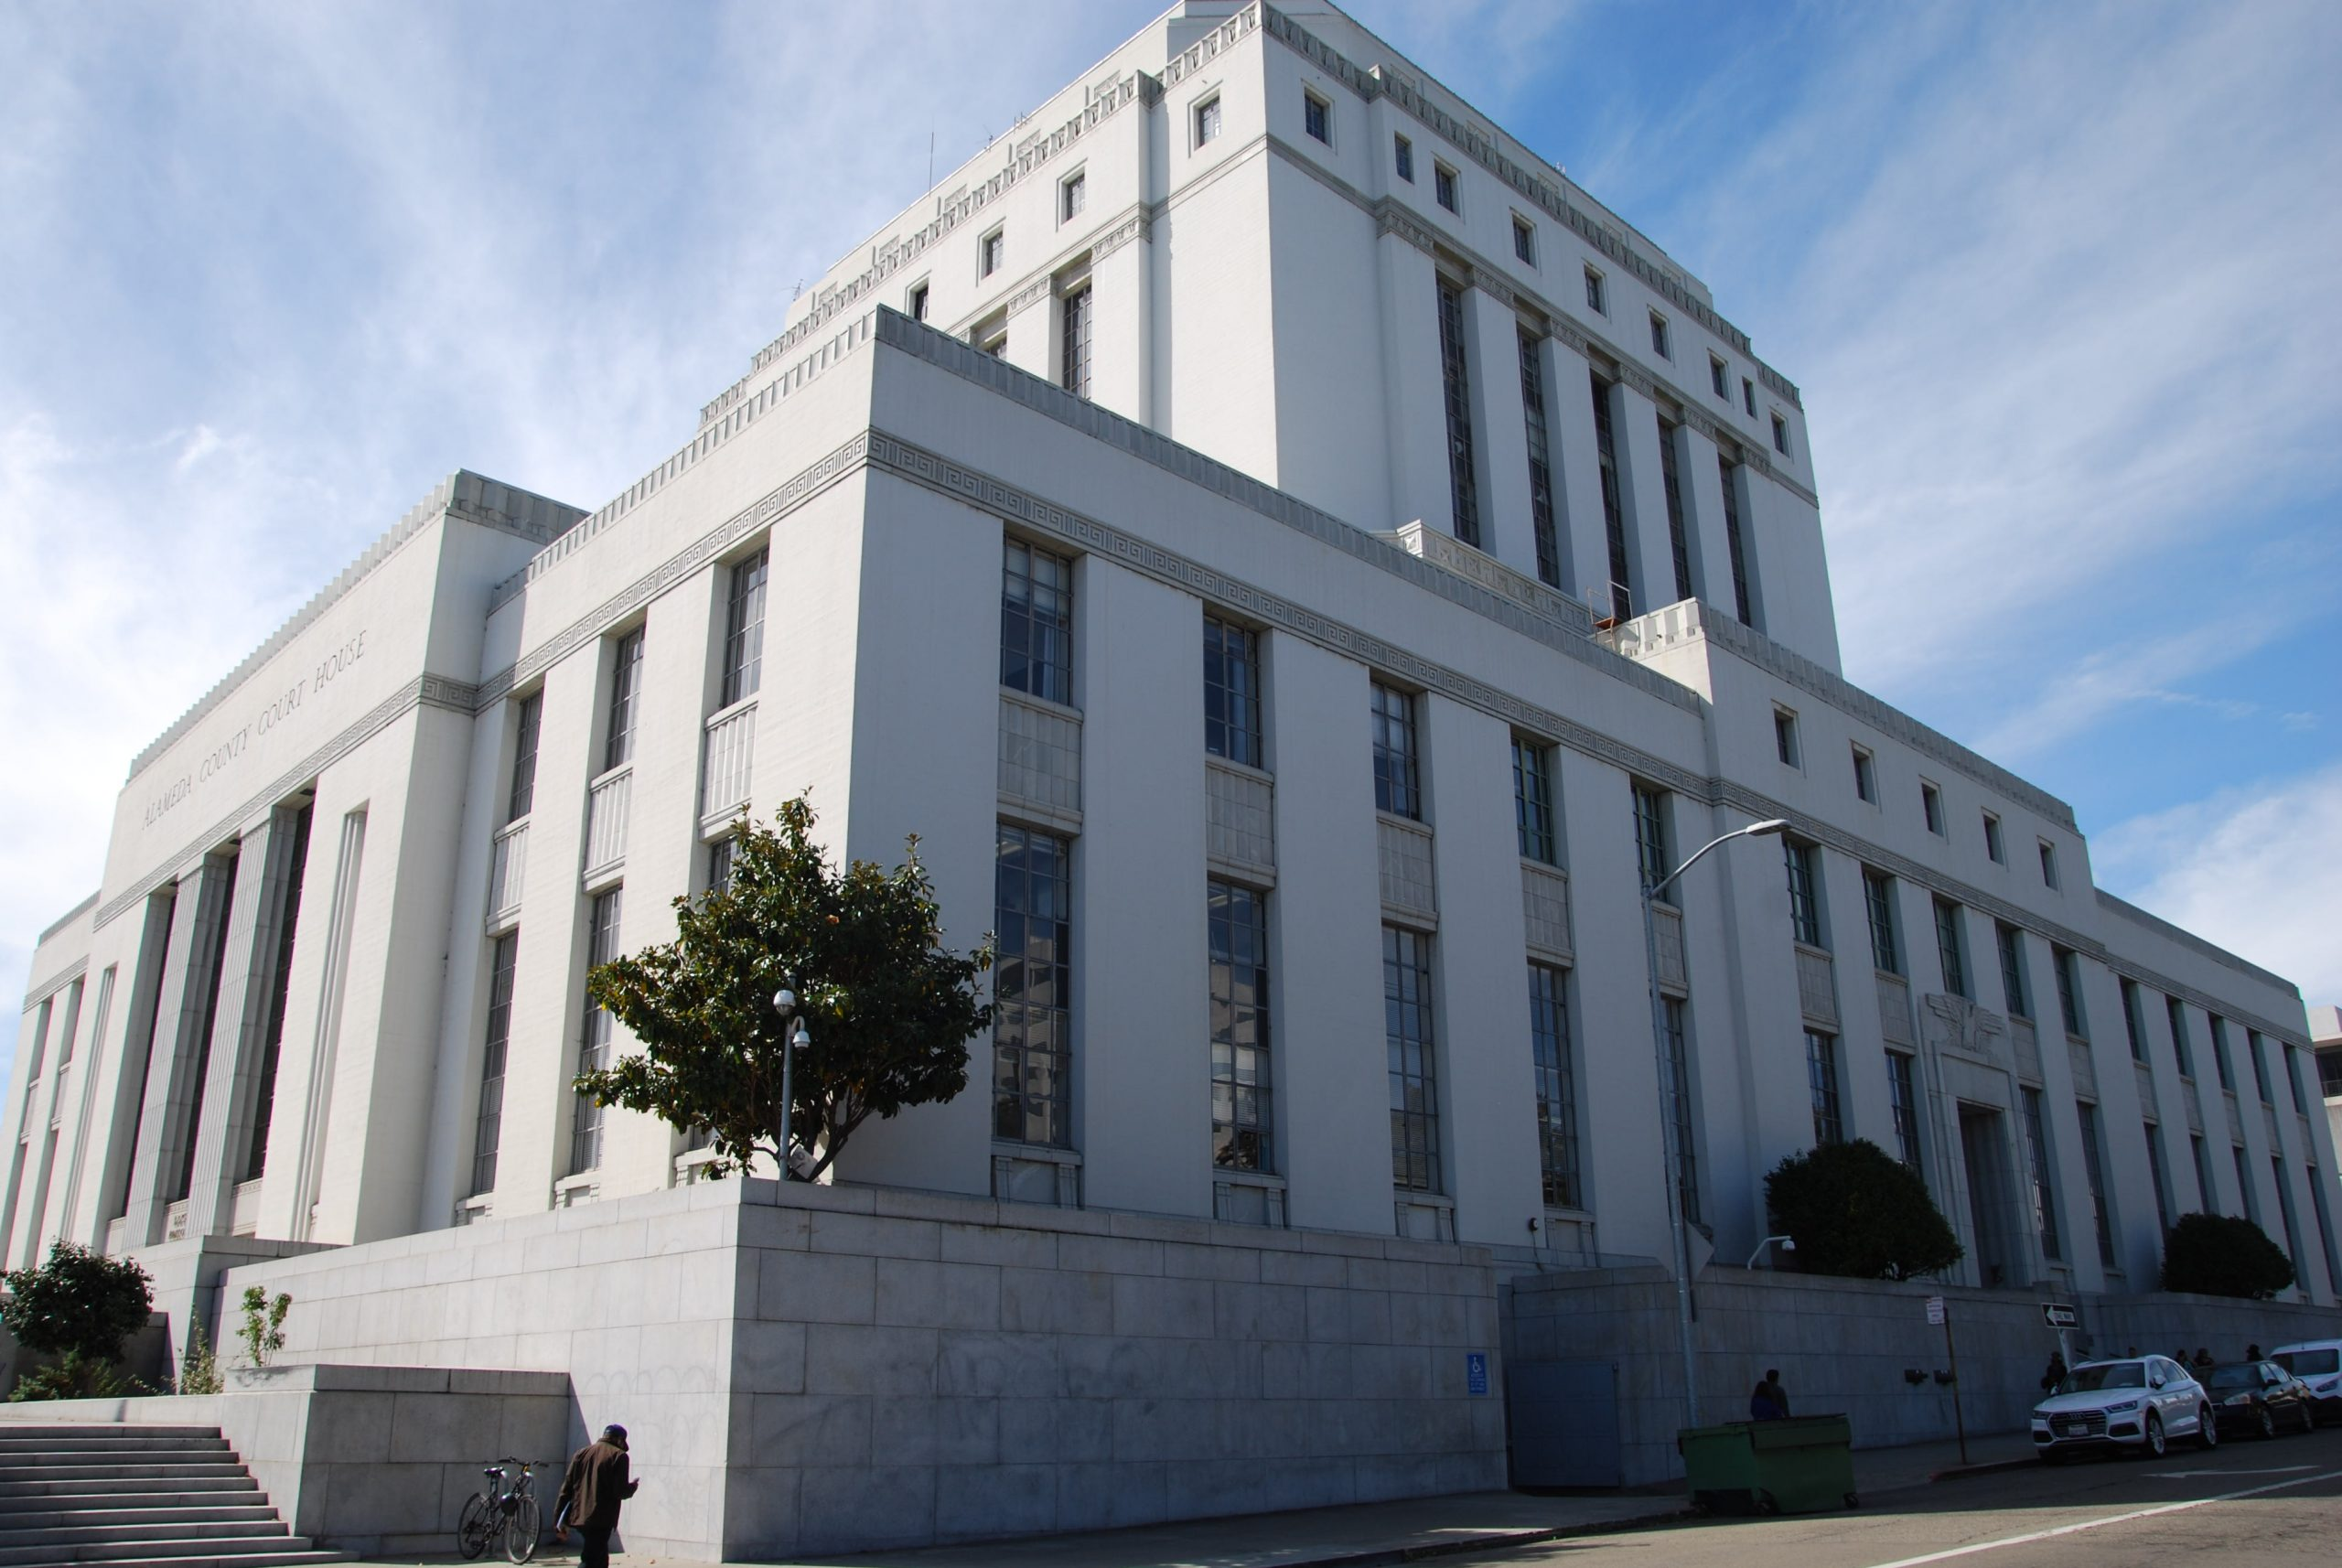 The Rene C. Davidson Alameda County courthouse in Oakland. Photo by Scott Morris.